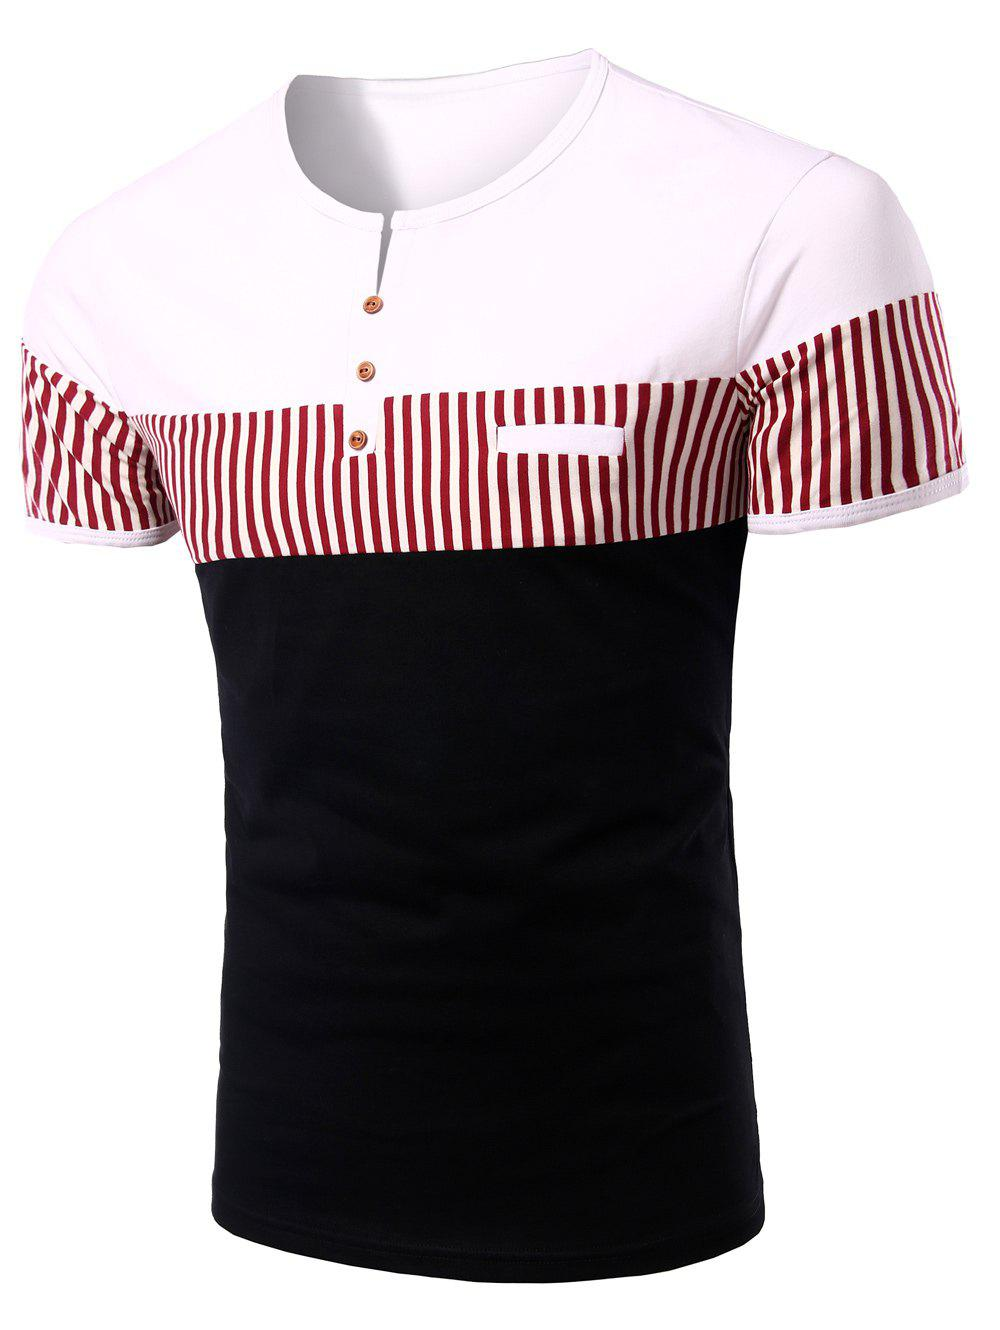 Men 's Stripes Round Neck Button Design Color Block Short Sleeves T-Shirt